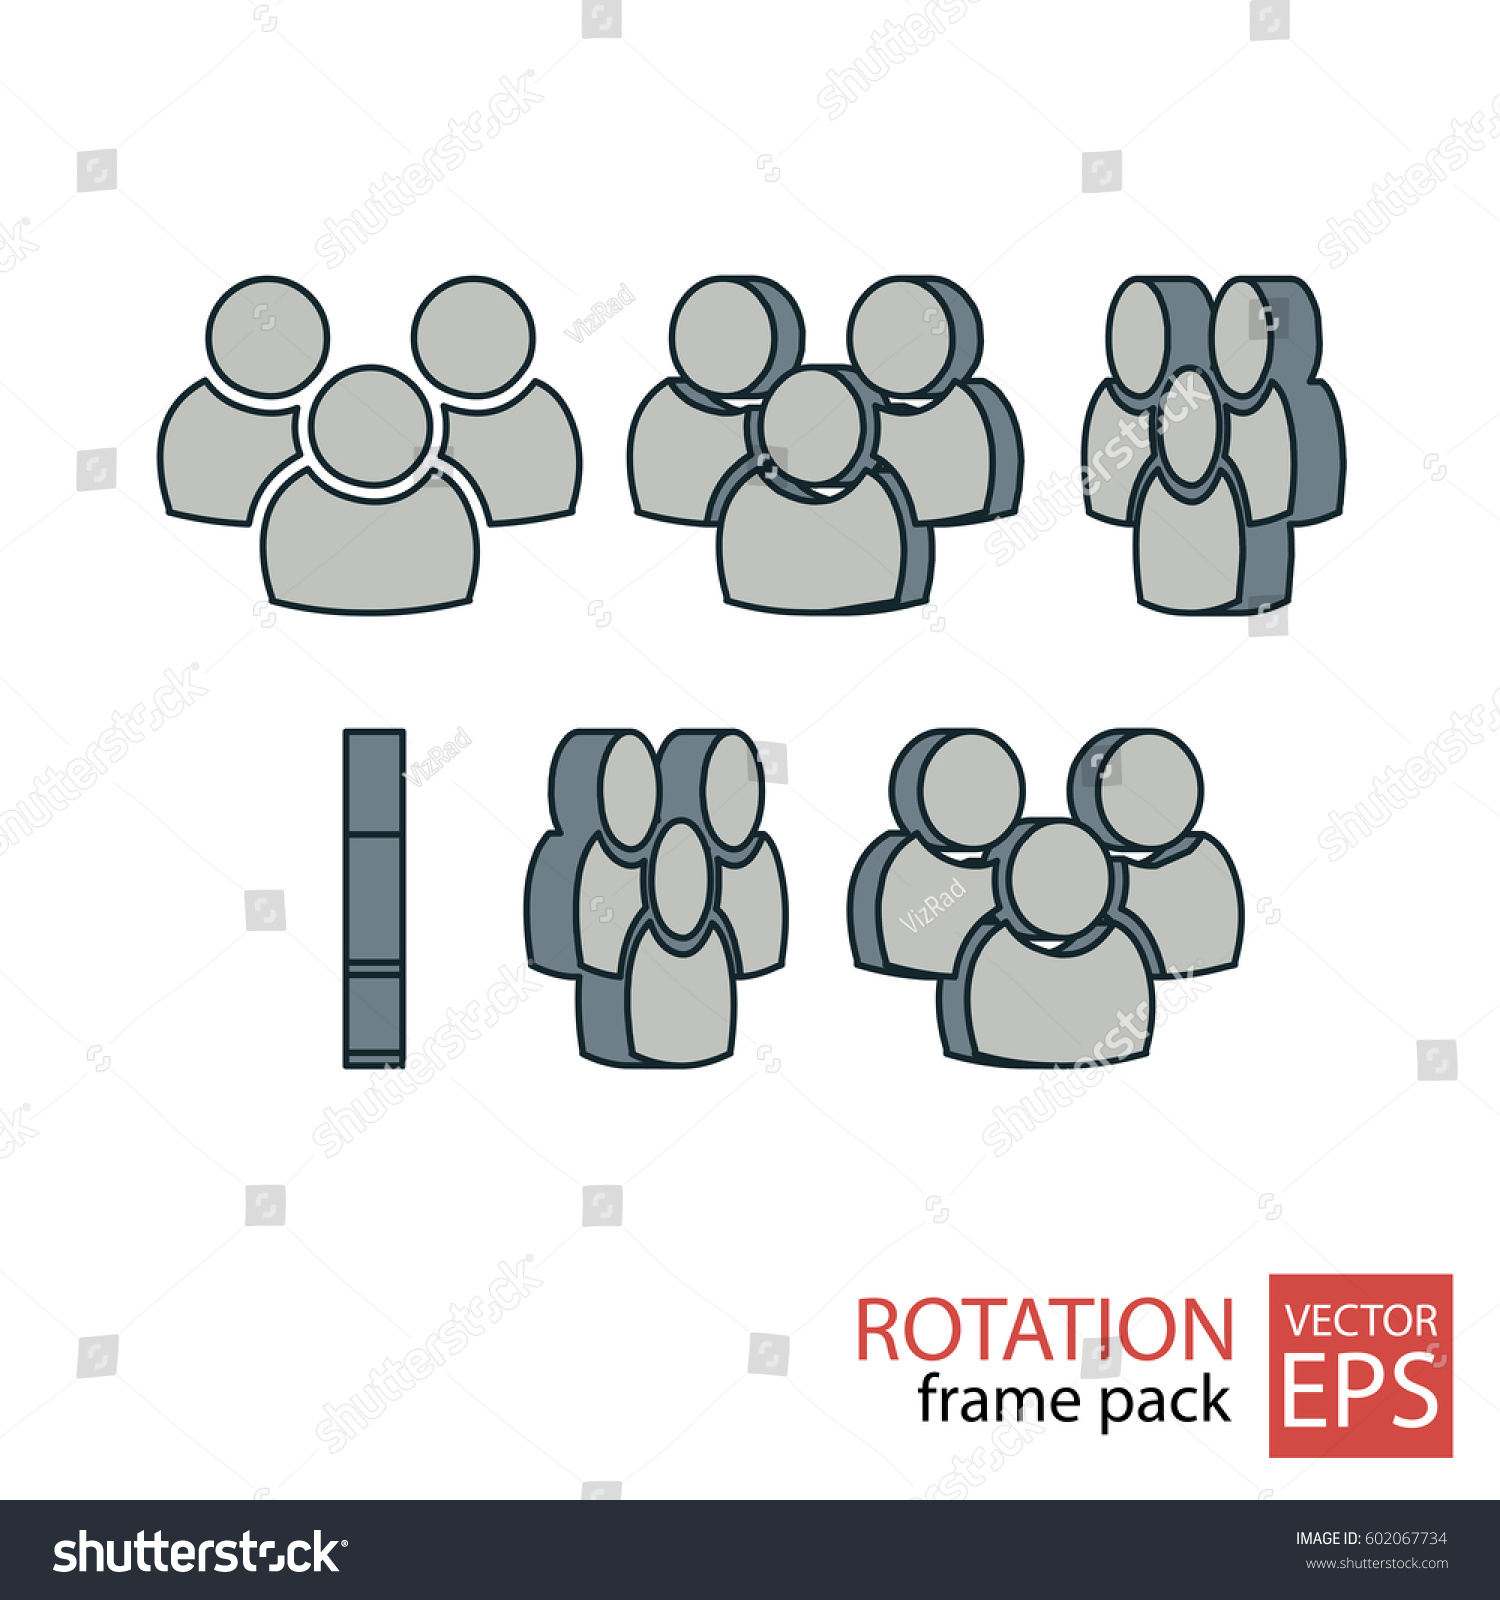 People Rotating Icon Set Frames Animation Stock Vector (Royalty Free ...